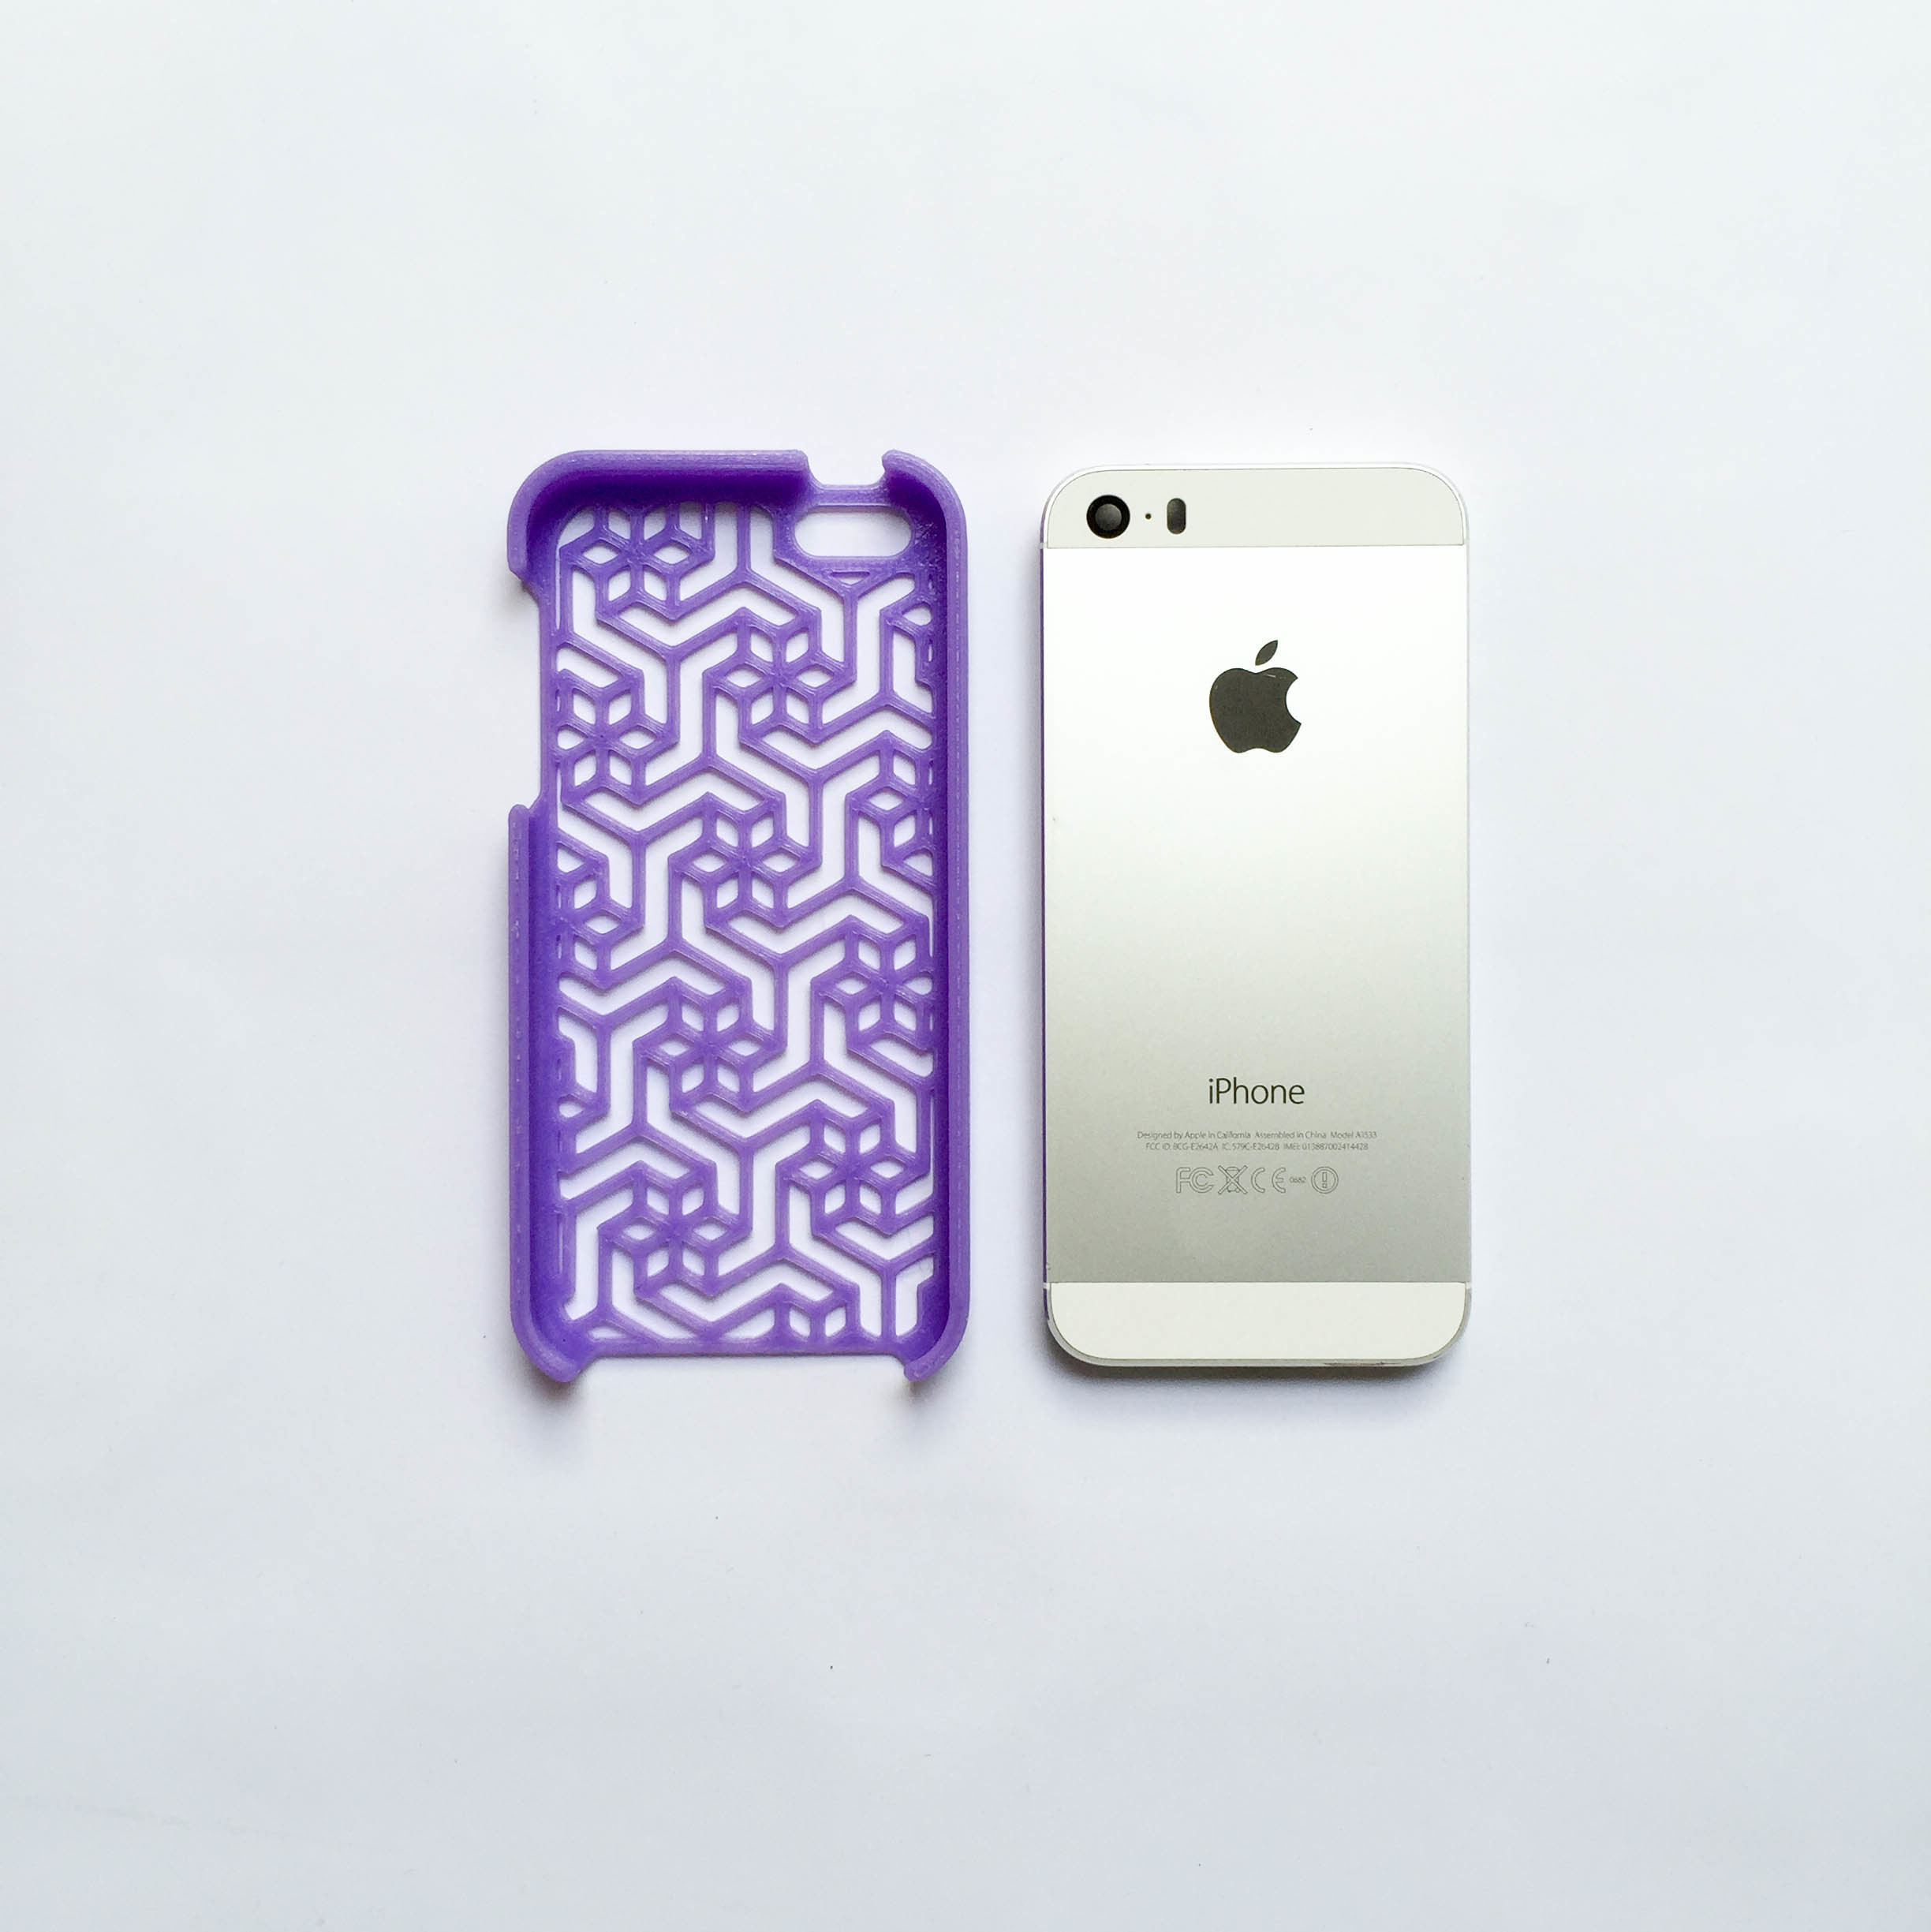 outlet store 16471 72217 iPhone 5/5S/SE case - LOTO @ Pinshape